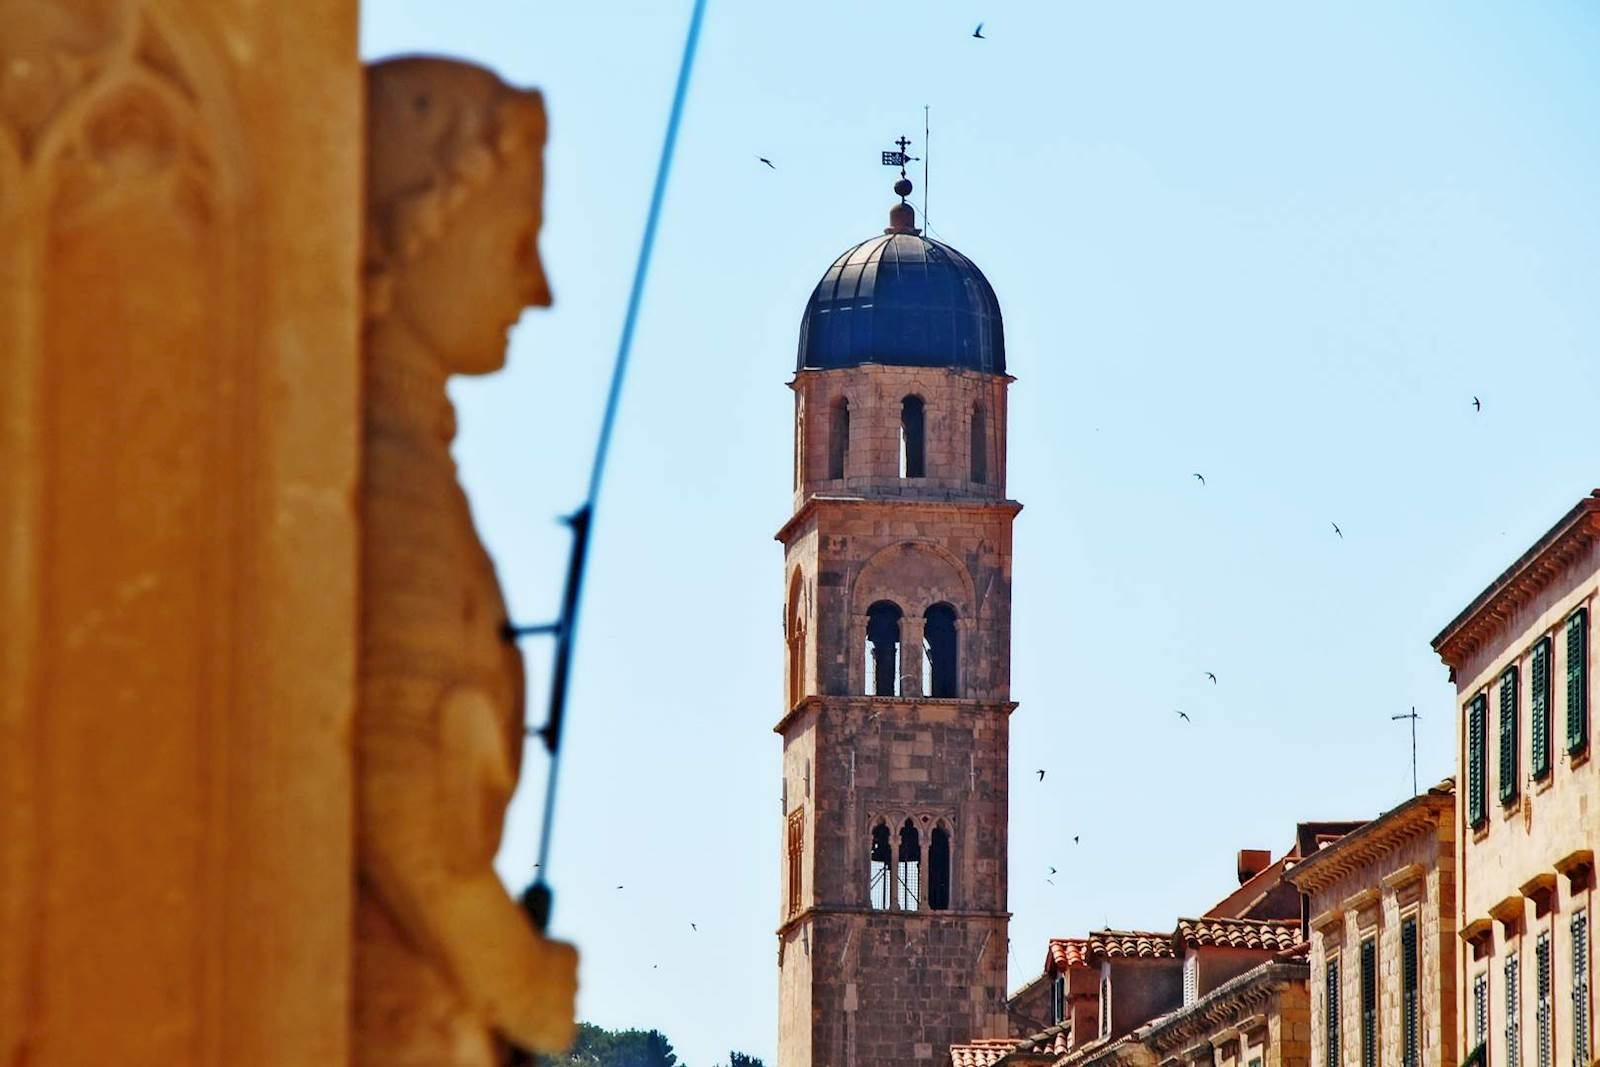 -images-excursions-discover-dubrovnik--20-dubrovnik-old-town-orlando-statue-2.jpg